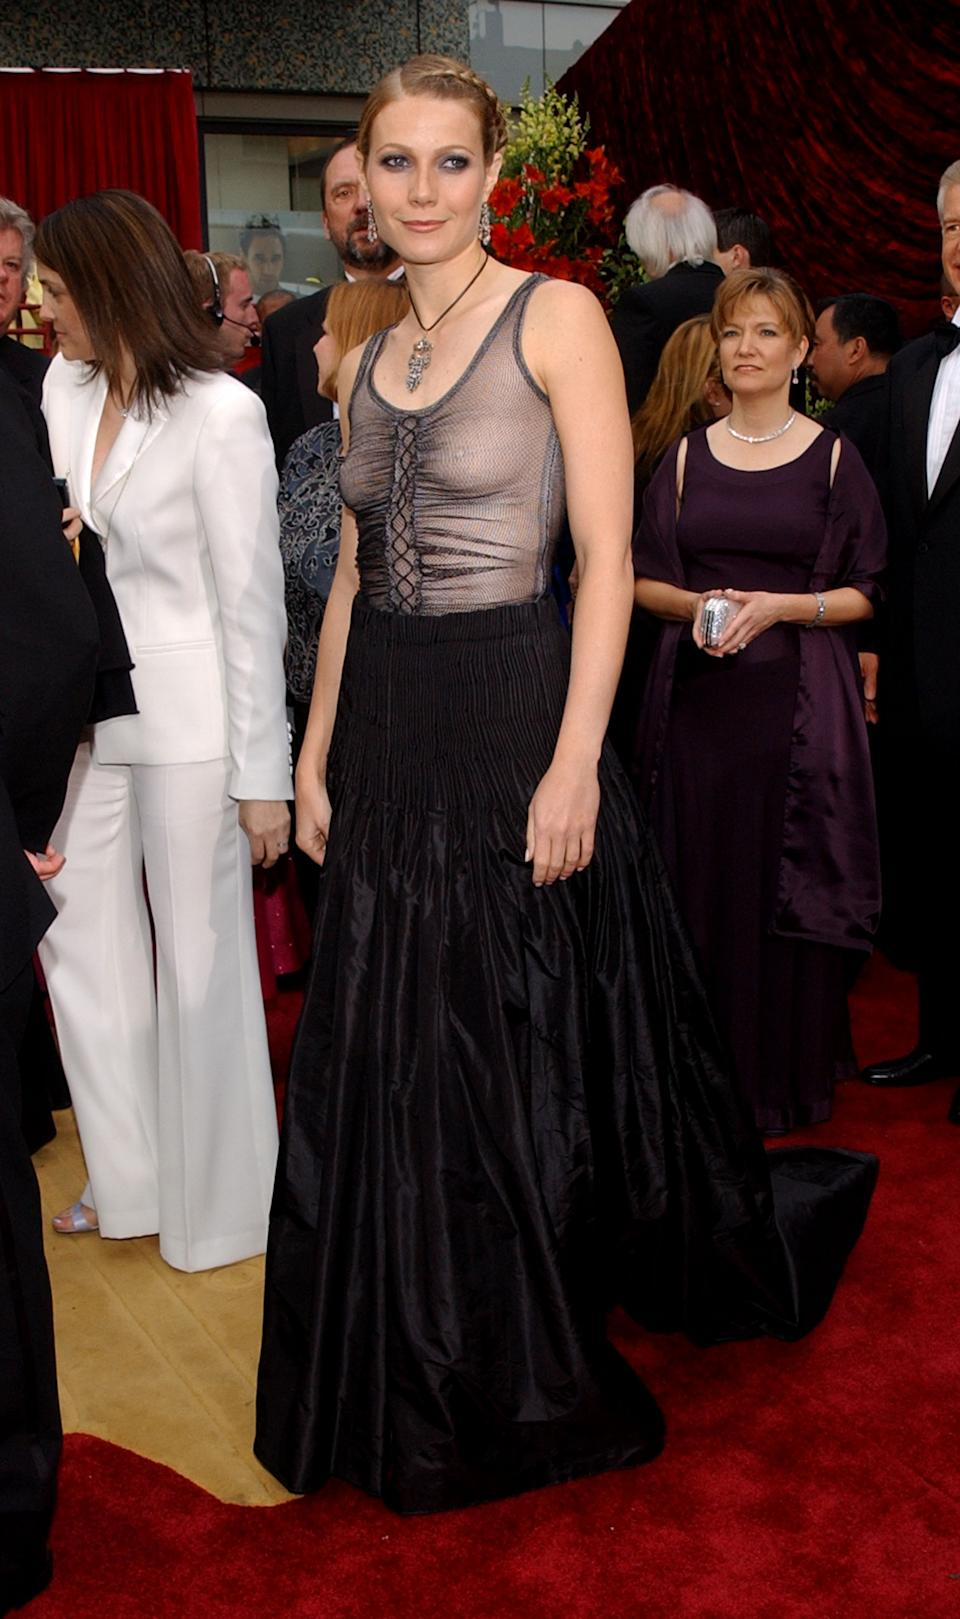 """<p>In 2017, the actress <a href=""""https://www.huffingtonpost.ca/entry/gwyneth-paltrow-worst-oscar-dresses-photos_n_2788452"""" rel=""""nofollow noopener"""" target=""""_blank"""" data-ylk=""""slk:admitted"""" class=""""link rapid-noclick-resp"""">admitted </a>on her website Goop that this """"goth"""" look was one of her most memorable Oscar looks, but for all the wrong reasons. """"There were a few issues; I still love the dress itself but I should have worn a bra and I should have just had simple beachy hair and less makeup,"""" Paltrow said. """"Then, it would have worked as I wanted it to - a little bit of punk at the Oscars.""""</p>"""